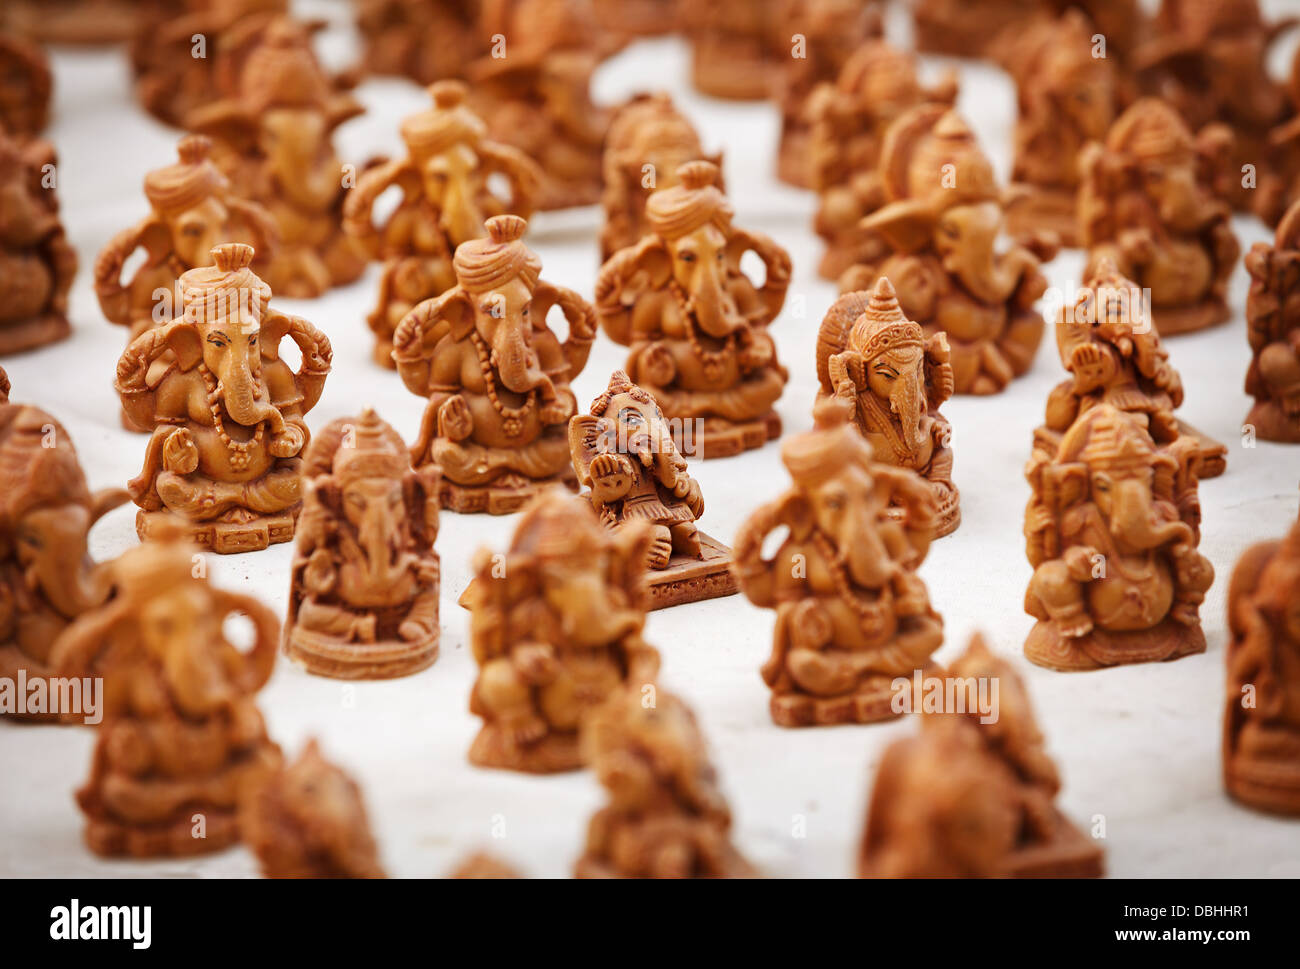 Souvenir figures of gods in the Indian market close up - Stock Image